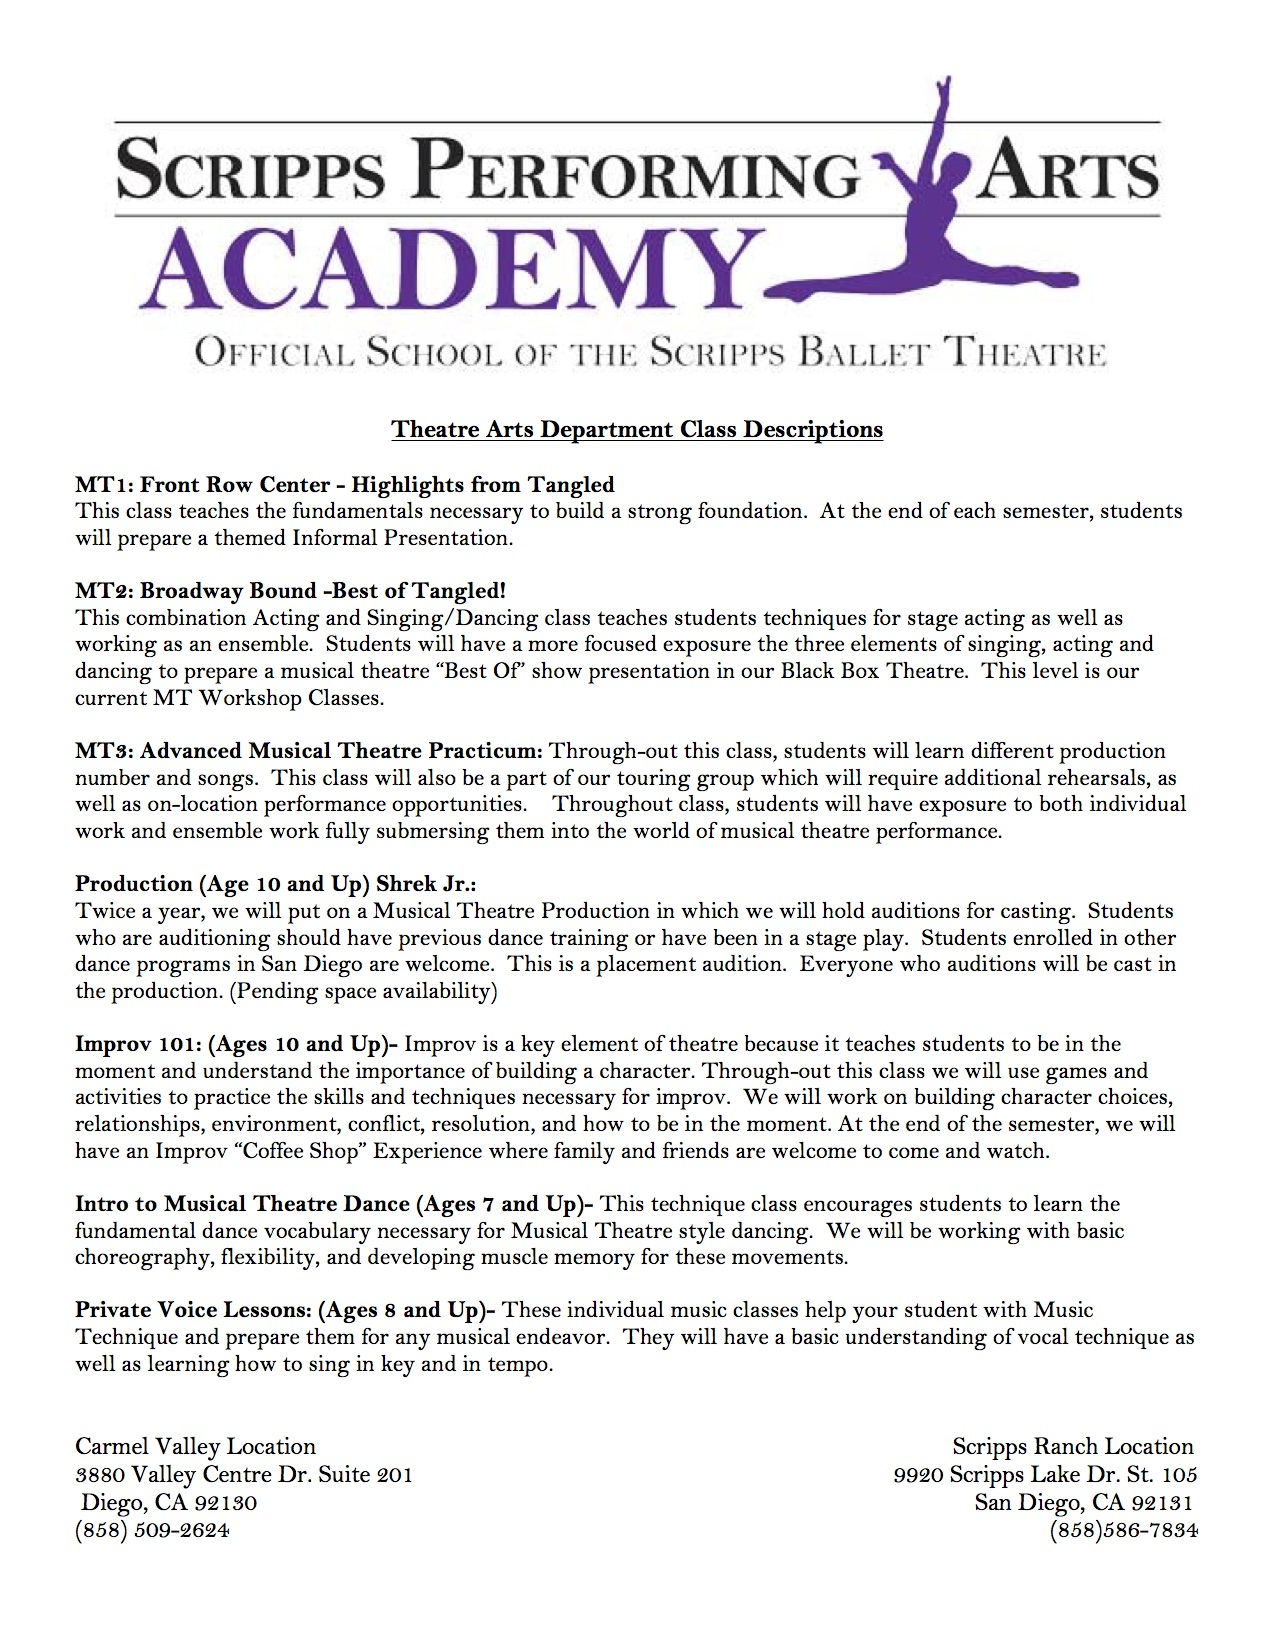 Theatre Depatment - Scripps Performing Arts Academy